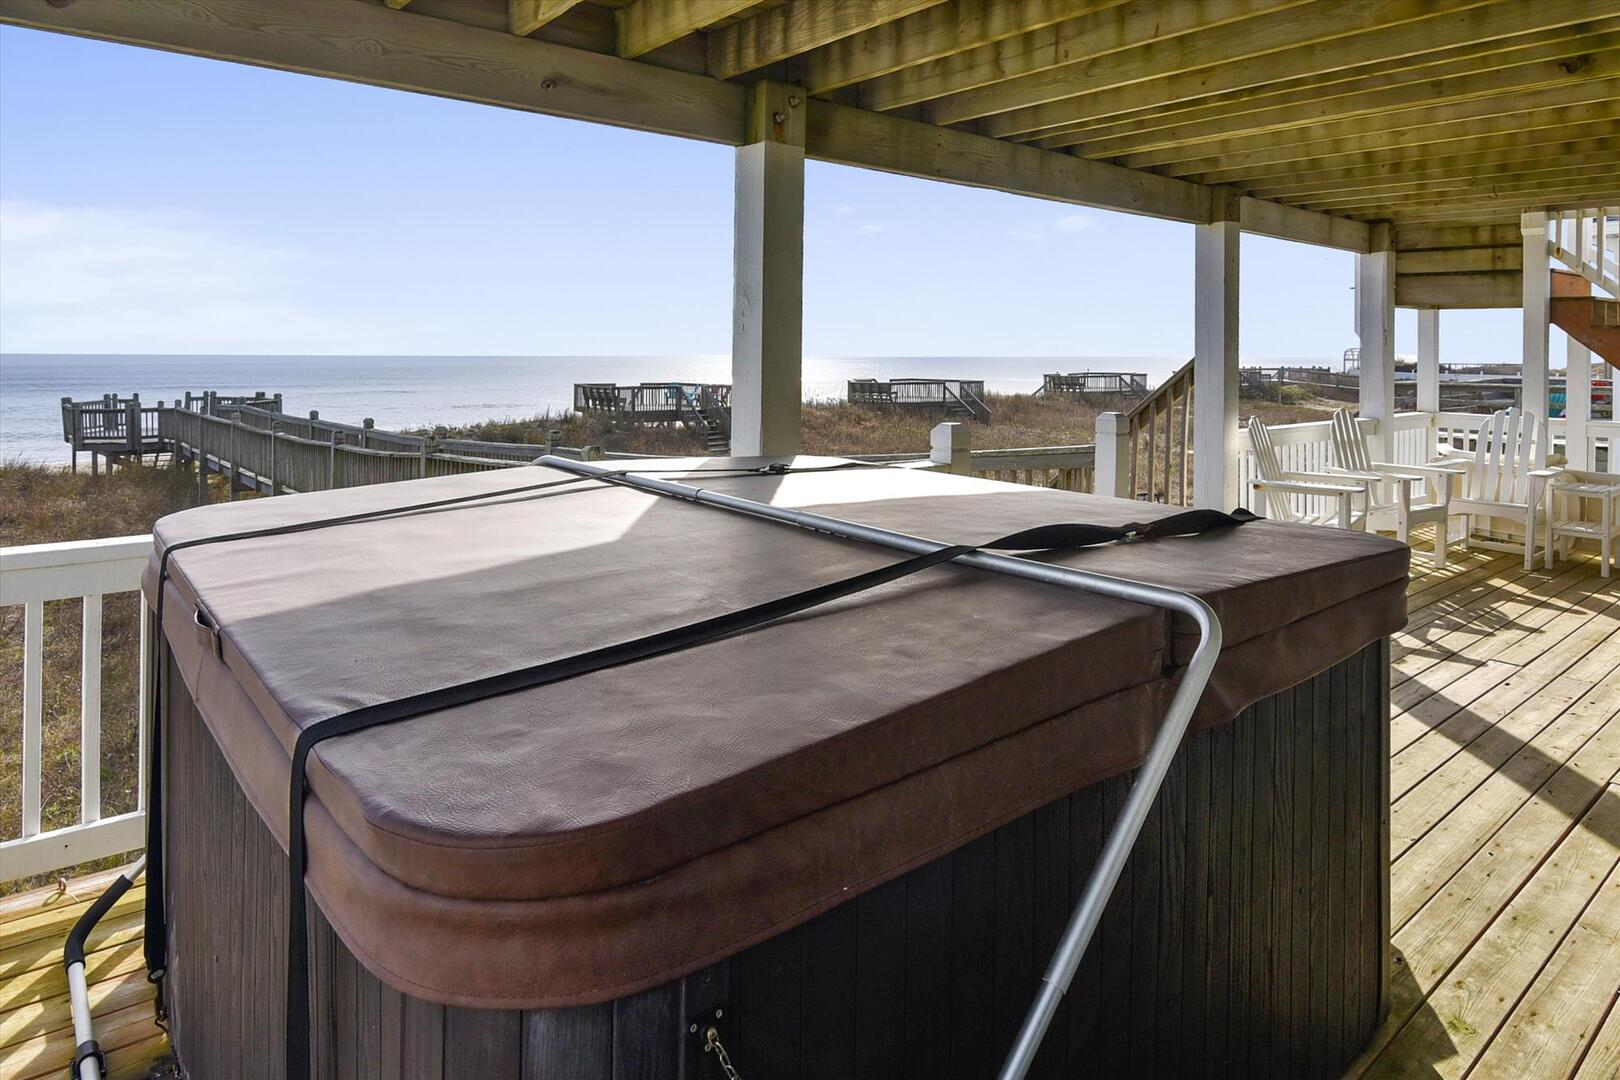 Middle/Entry Level,Hot Tub,